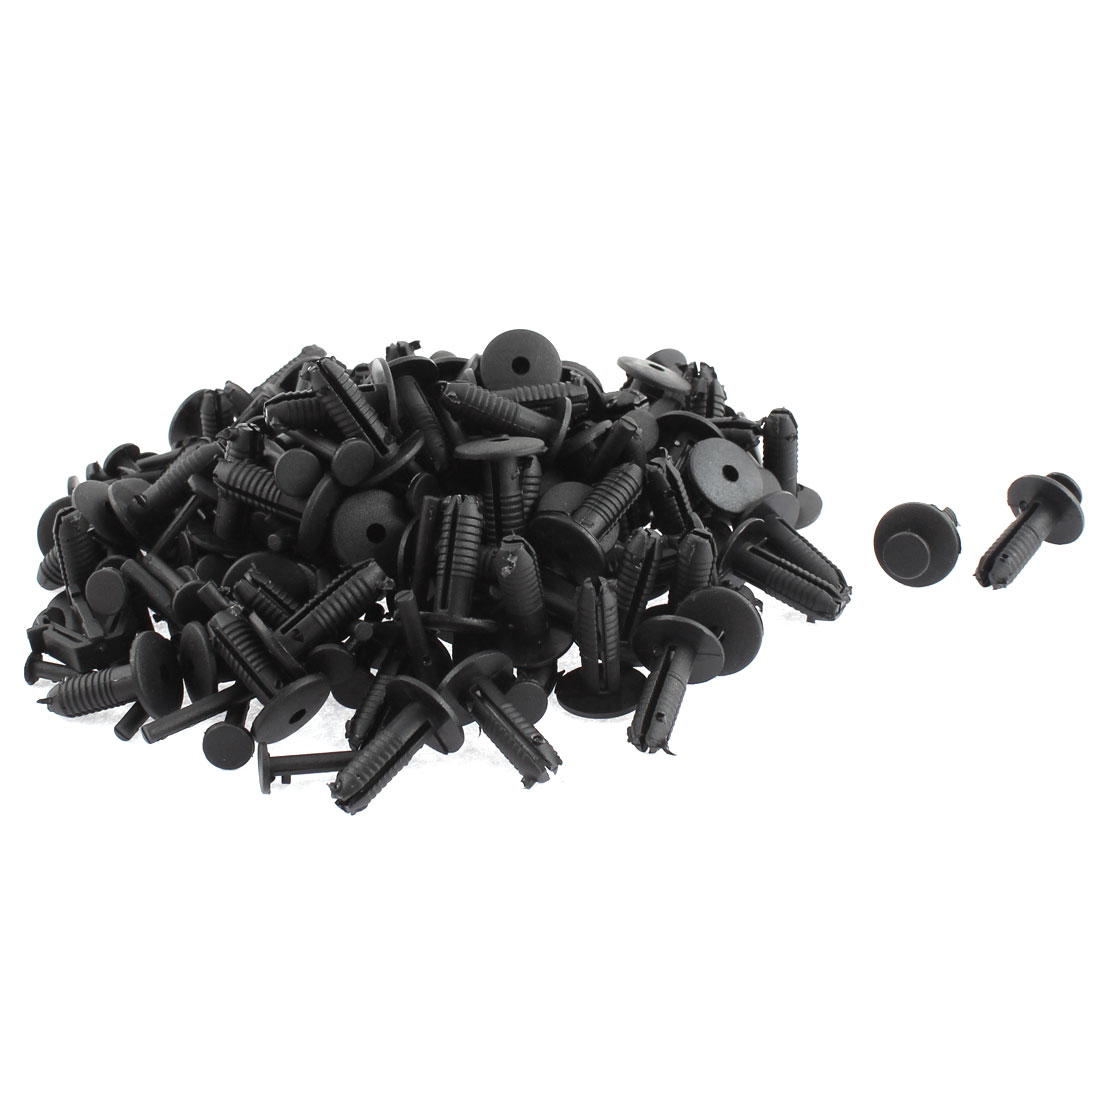 Car Bumper Fender 7mm Hole Black Plastic Rivets Fasteners Push Retainer Moulding Clips 100pcs